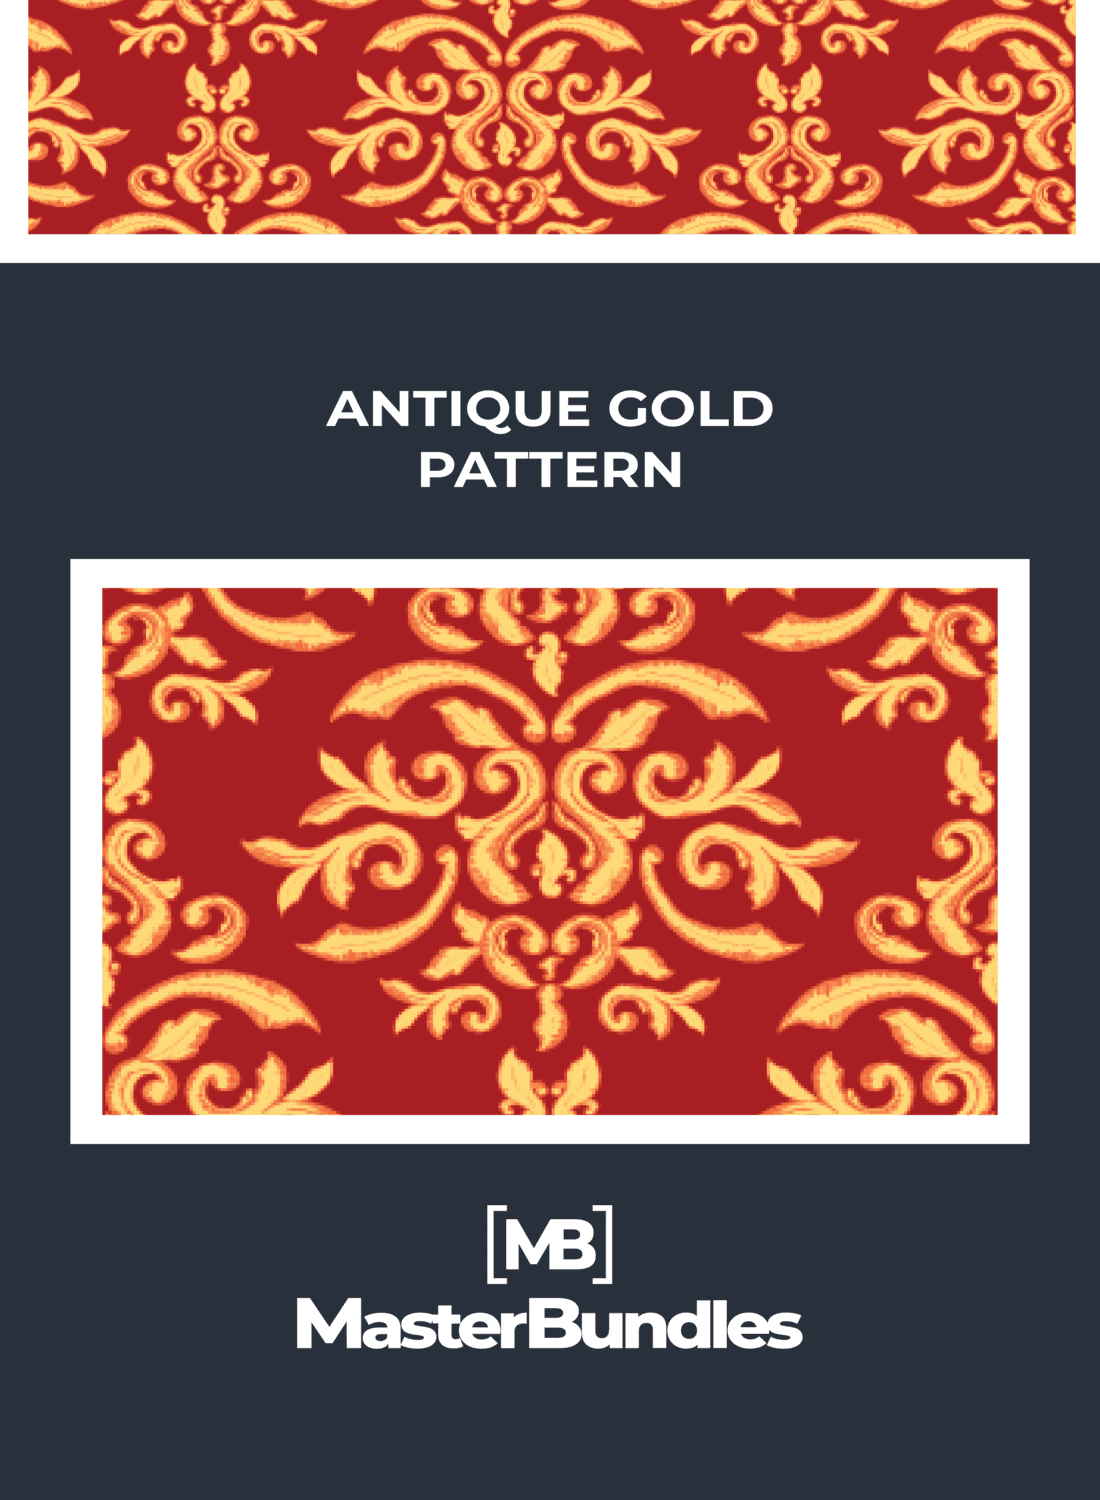 Red and golden created a unique style.